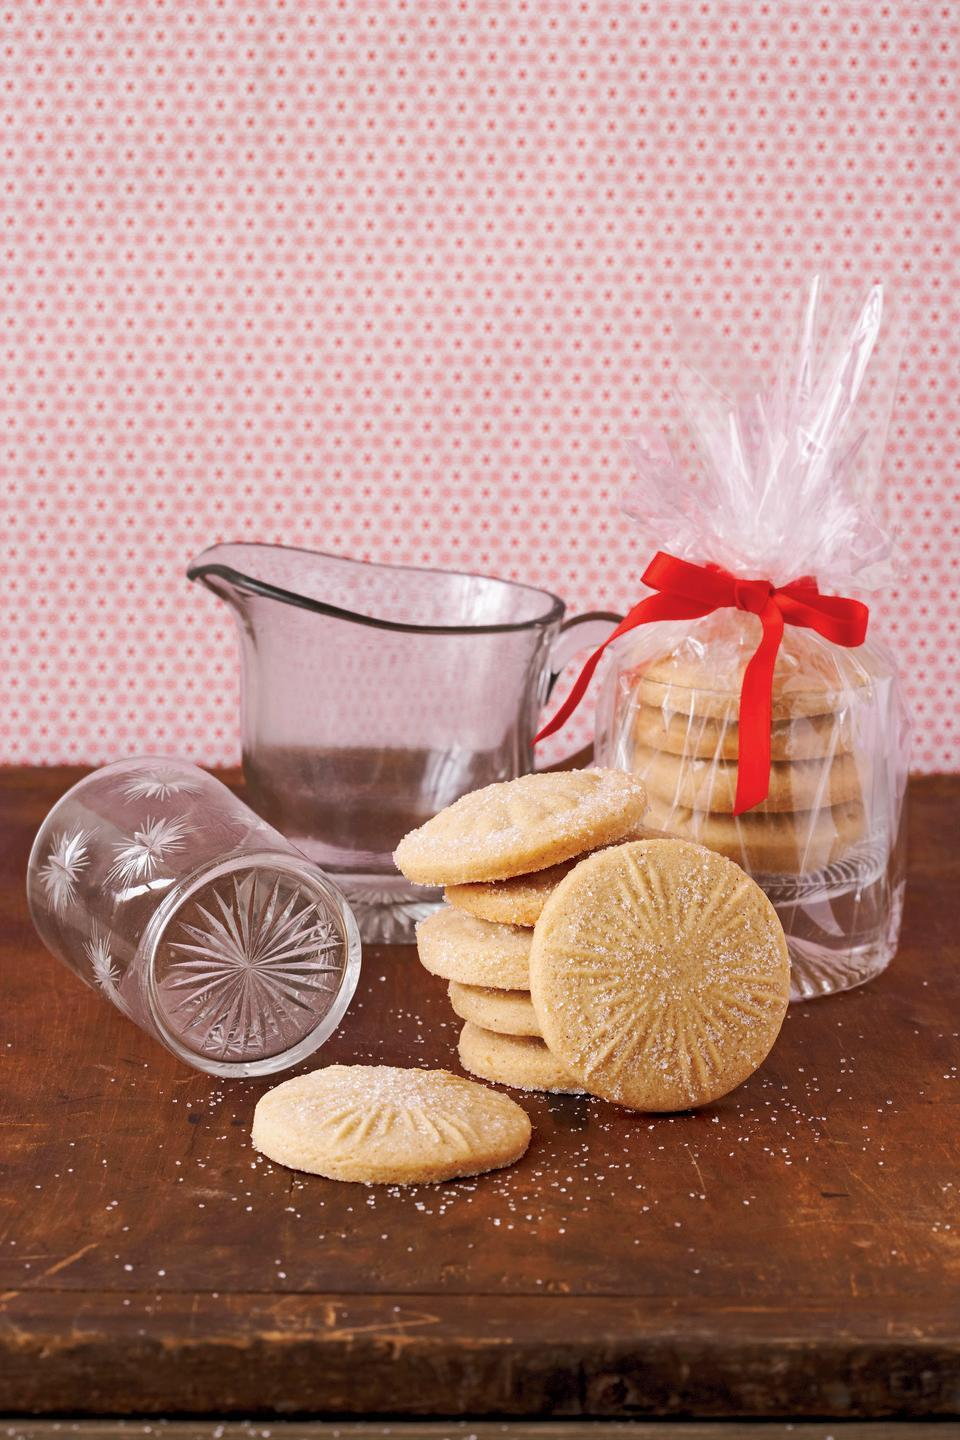 "<p>Simplify your holiday baking this season with just one dough recipe.</p><p>Get the recipe from <a href=""https://www.delish.com/cooking/recipe-ideas/recipes/a28549/sugar-cookie-dough-clv1207/"" rel=""nofollow noopener"" target=""_blank"" data-ylk=""slk:Delish"" class=""link rapid-noclick-resp"">Delish</a>. </p>"